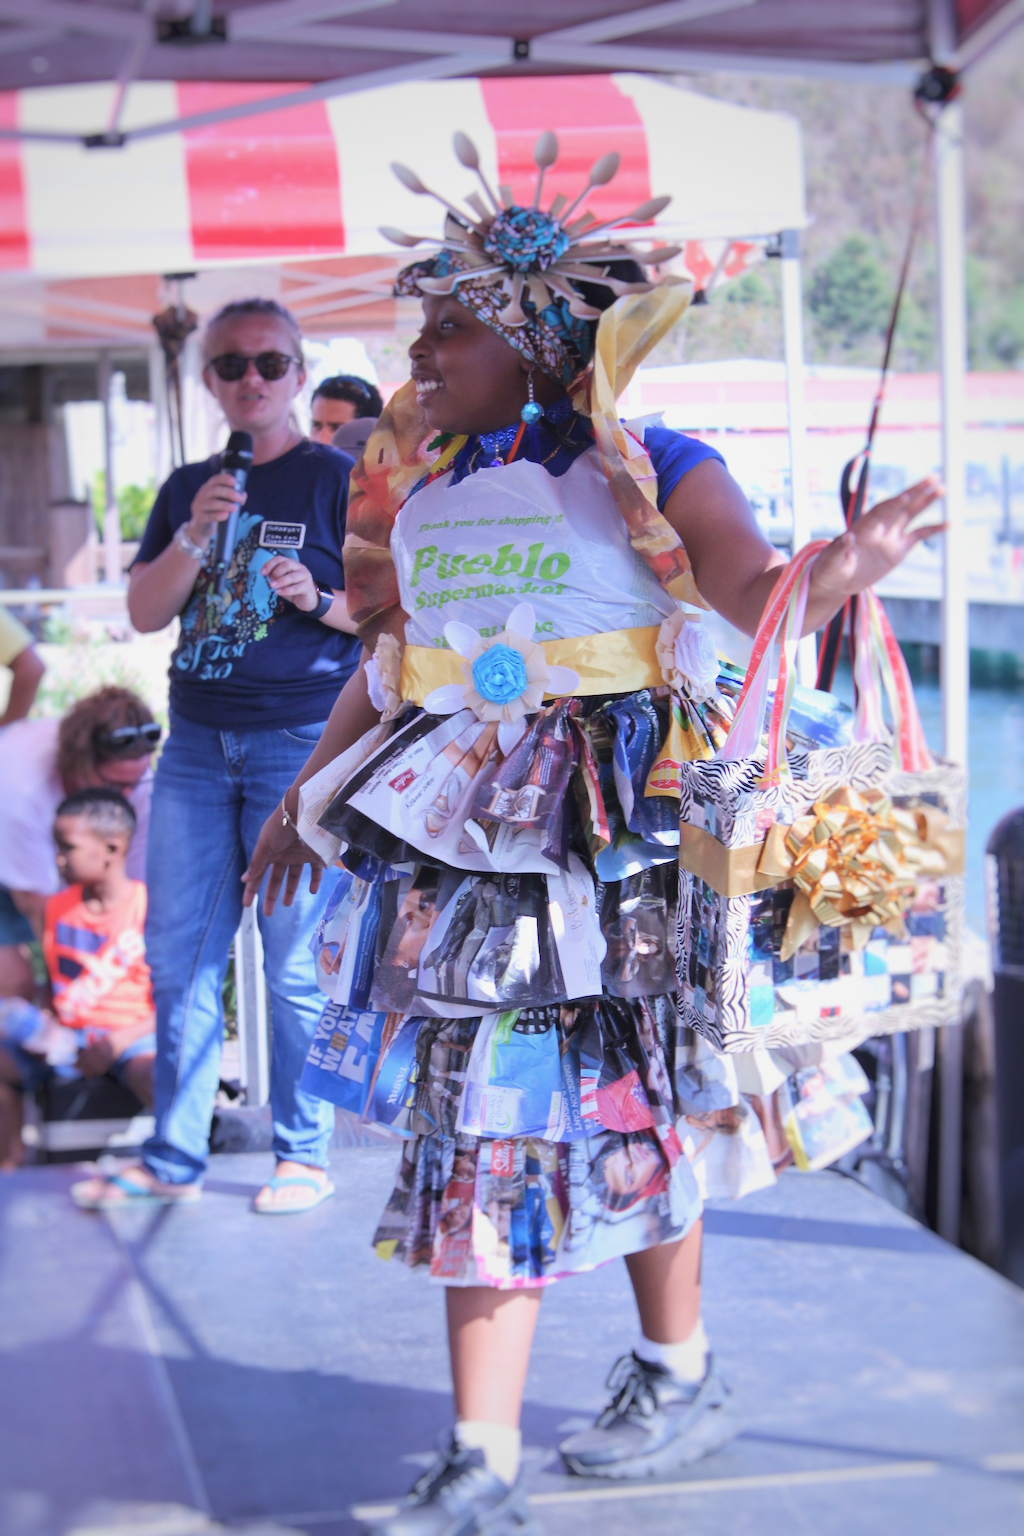 Wearing a ruffled dress made of magazines, newspapers and grocery bags, Kelyssa Kelley, graced the stage of the Trashion Show with a smile and panache. The 9-year-old represented Lockhart Elementary School and completed her outfit with a handbag and full head piece made from recycled materials.